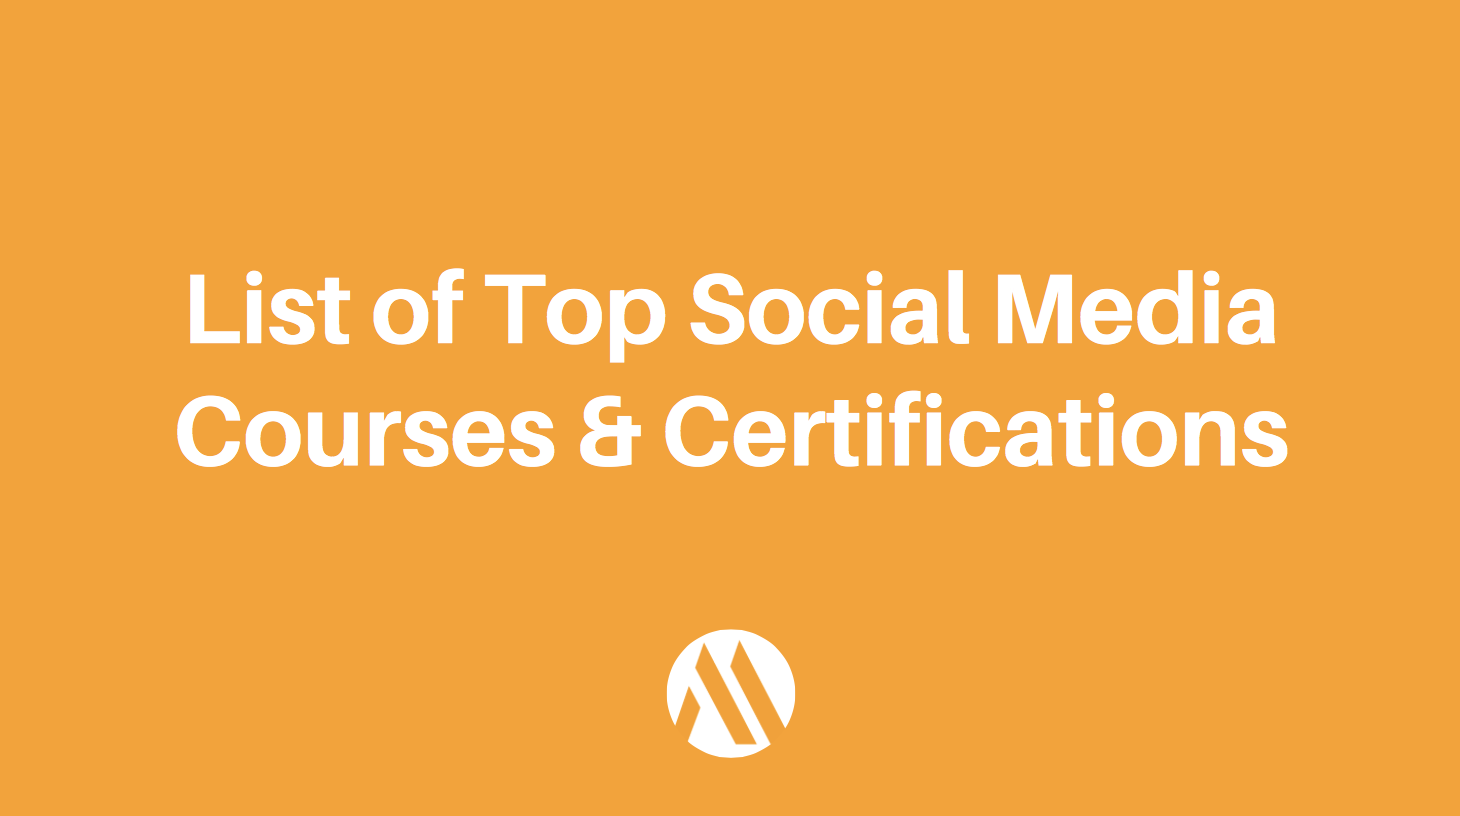 List of Top Online Social Media Courses